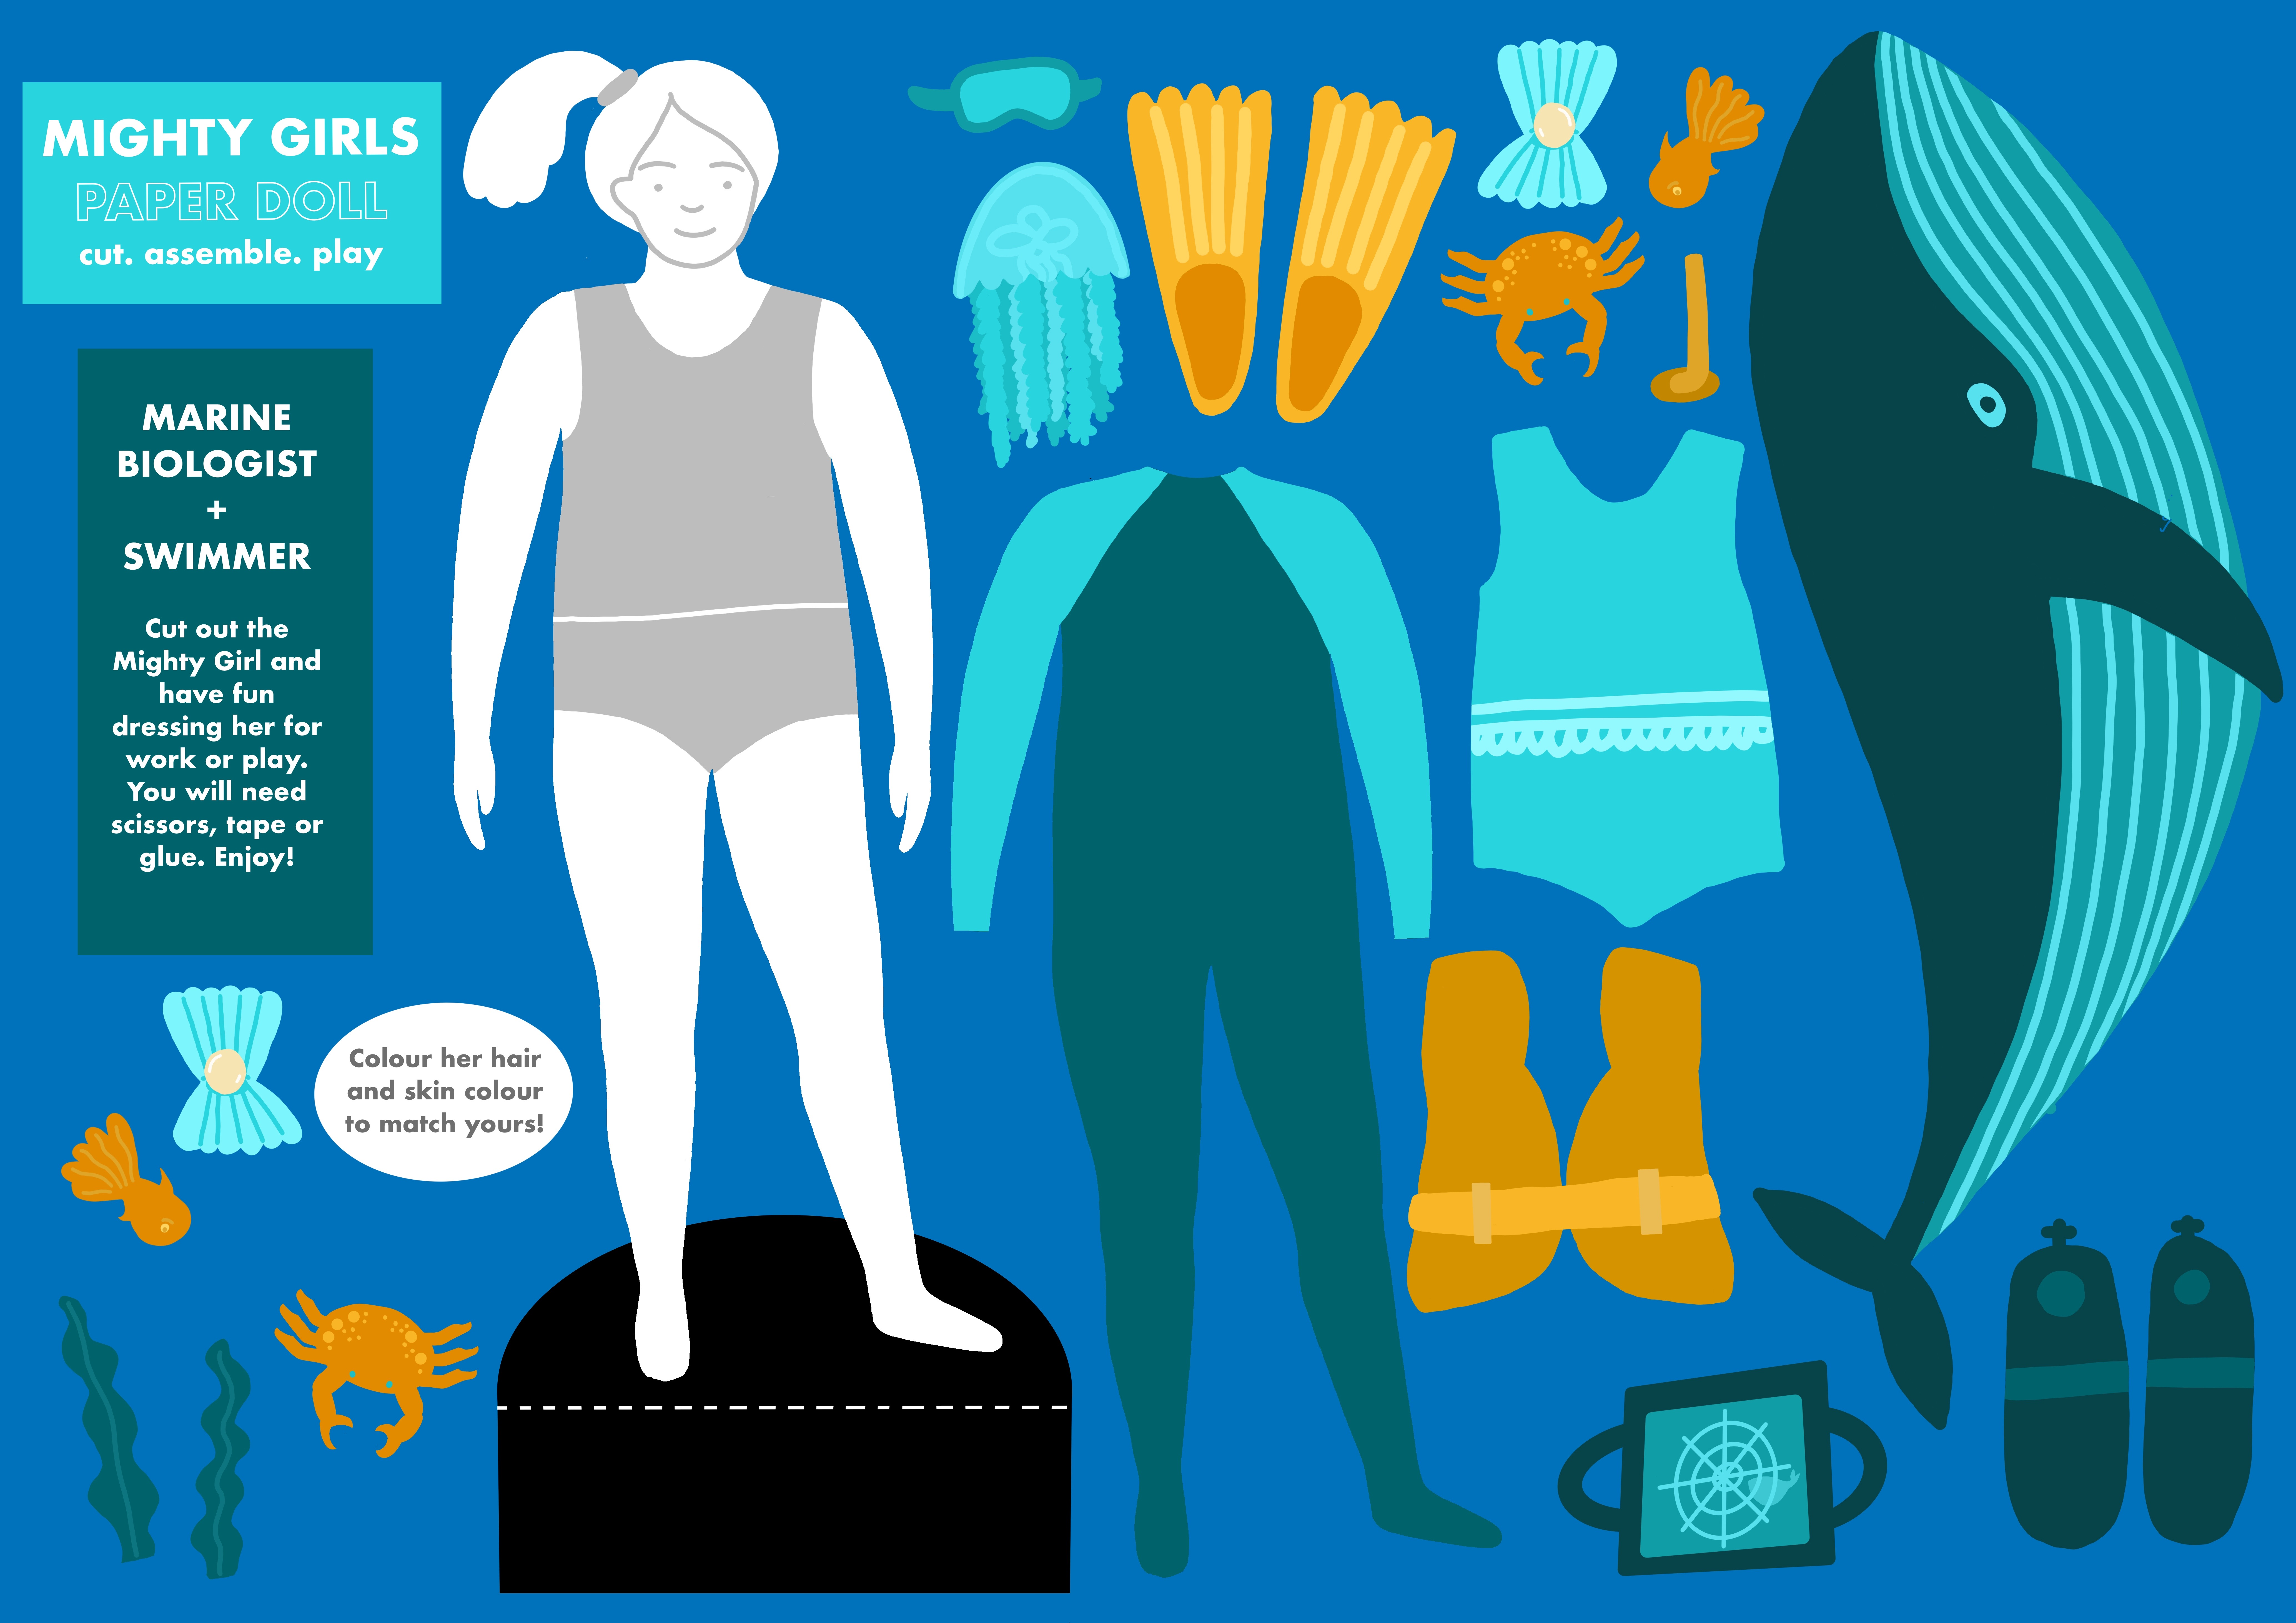 Mighty Girls Paper Doll - Marine Biologist and Swimmer.